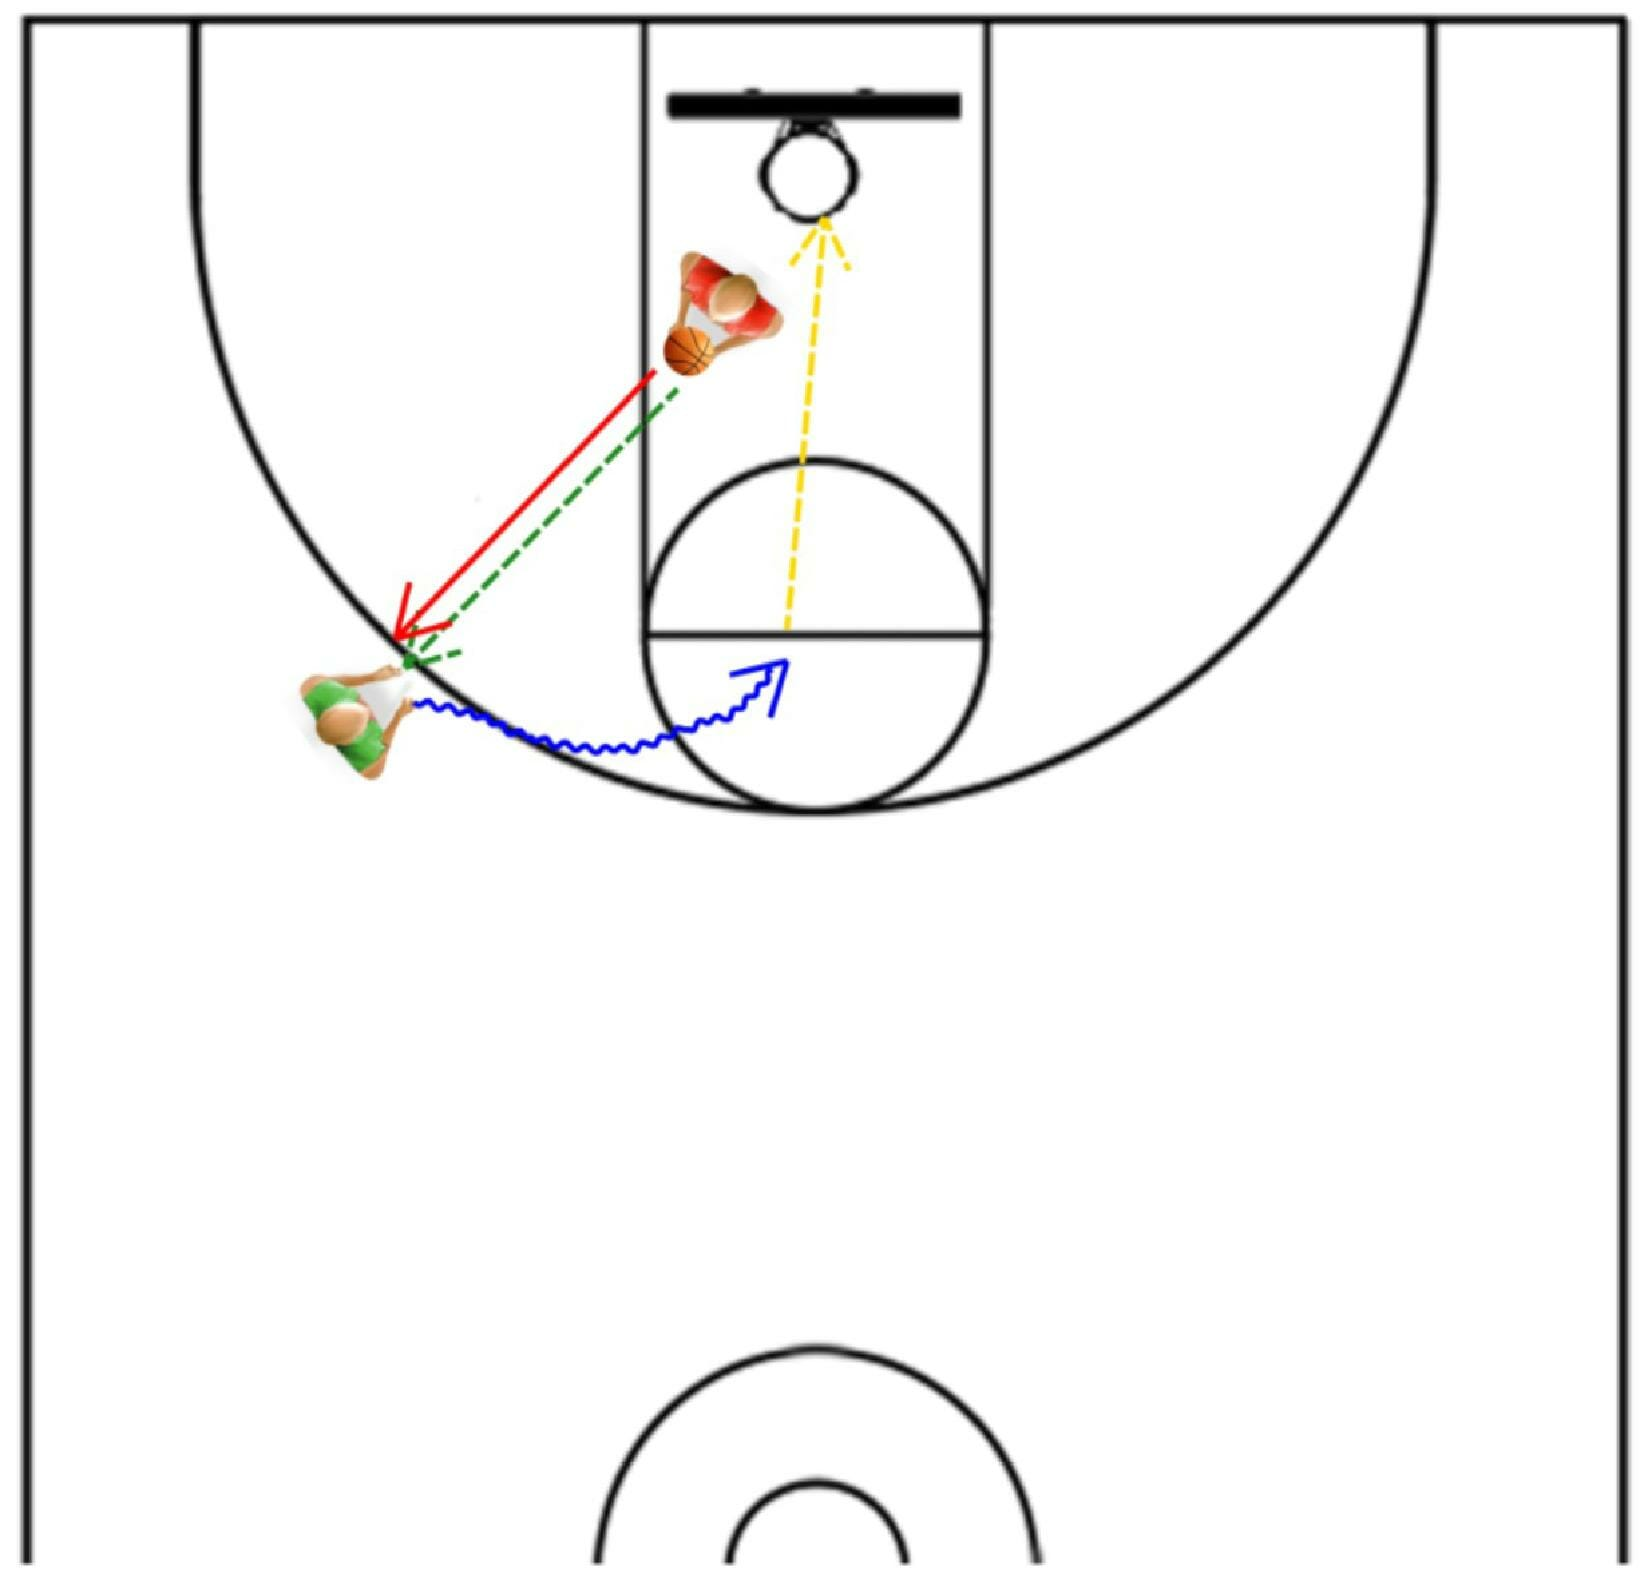 3 Point Shooting Drill Workout To Maximize Performance